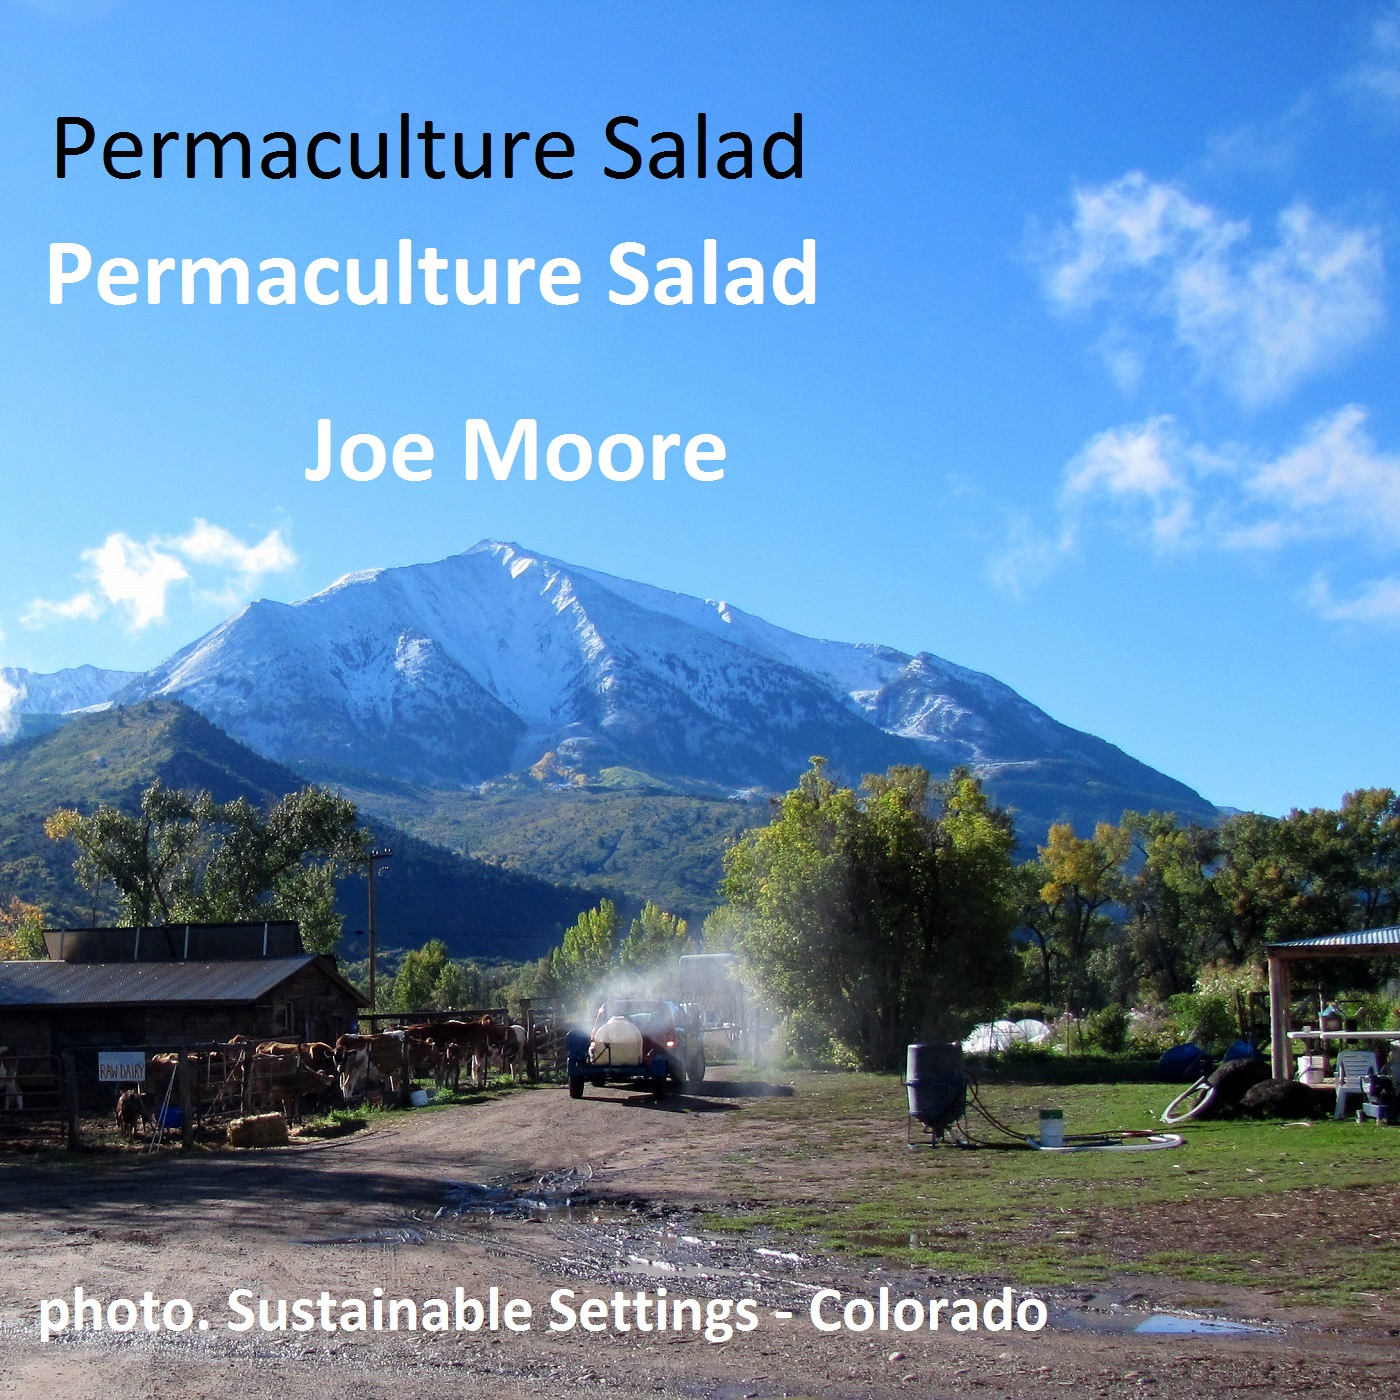 Permaculture SaladPermaculture Salad